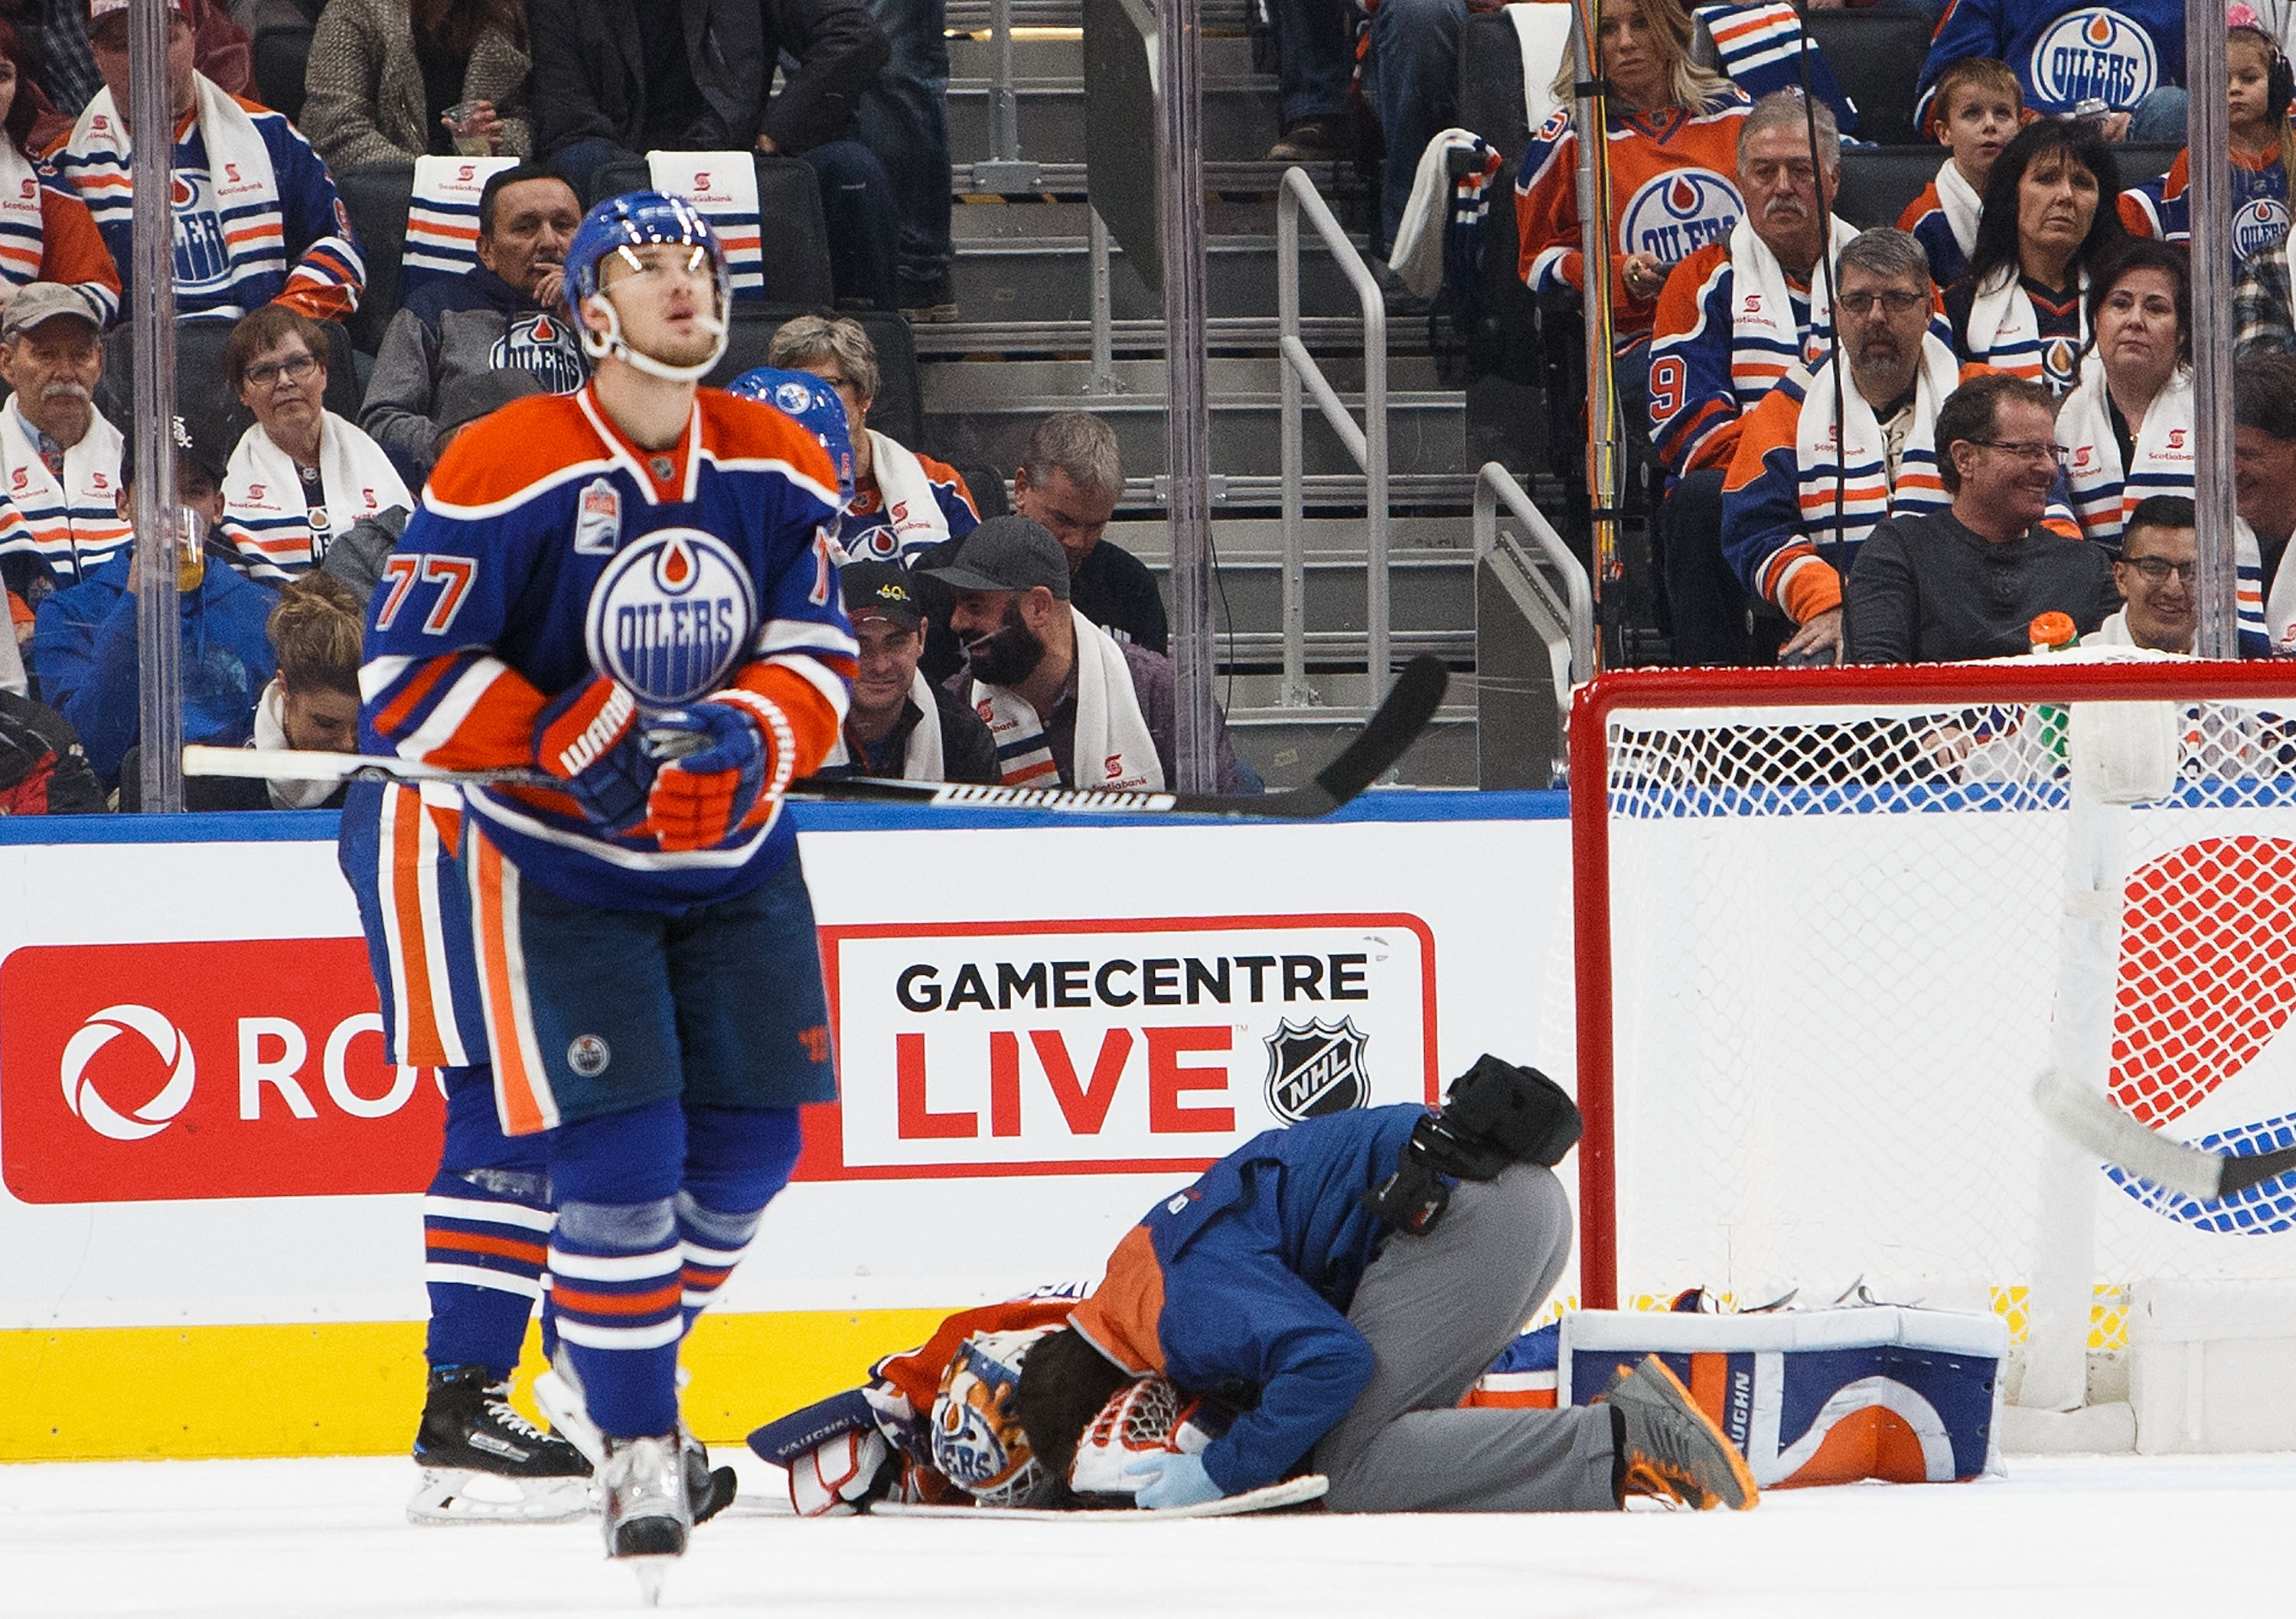 Oilers goalie Jonas Gustavsson stayed in the game after being checked by an athletic trainer, but the NHL removed him. (Photo by Codie McLachlan/Getty Images)